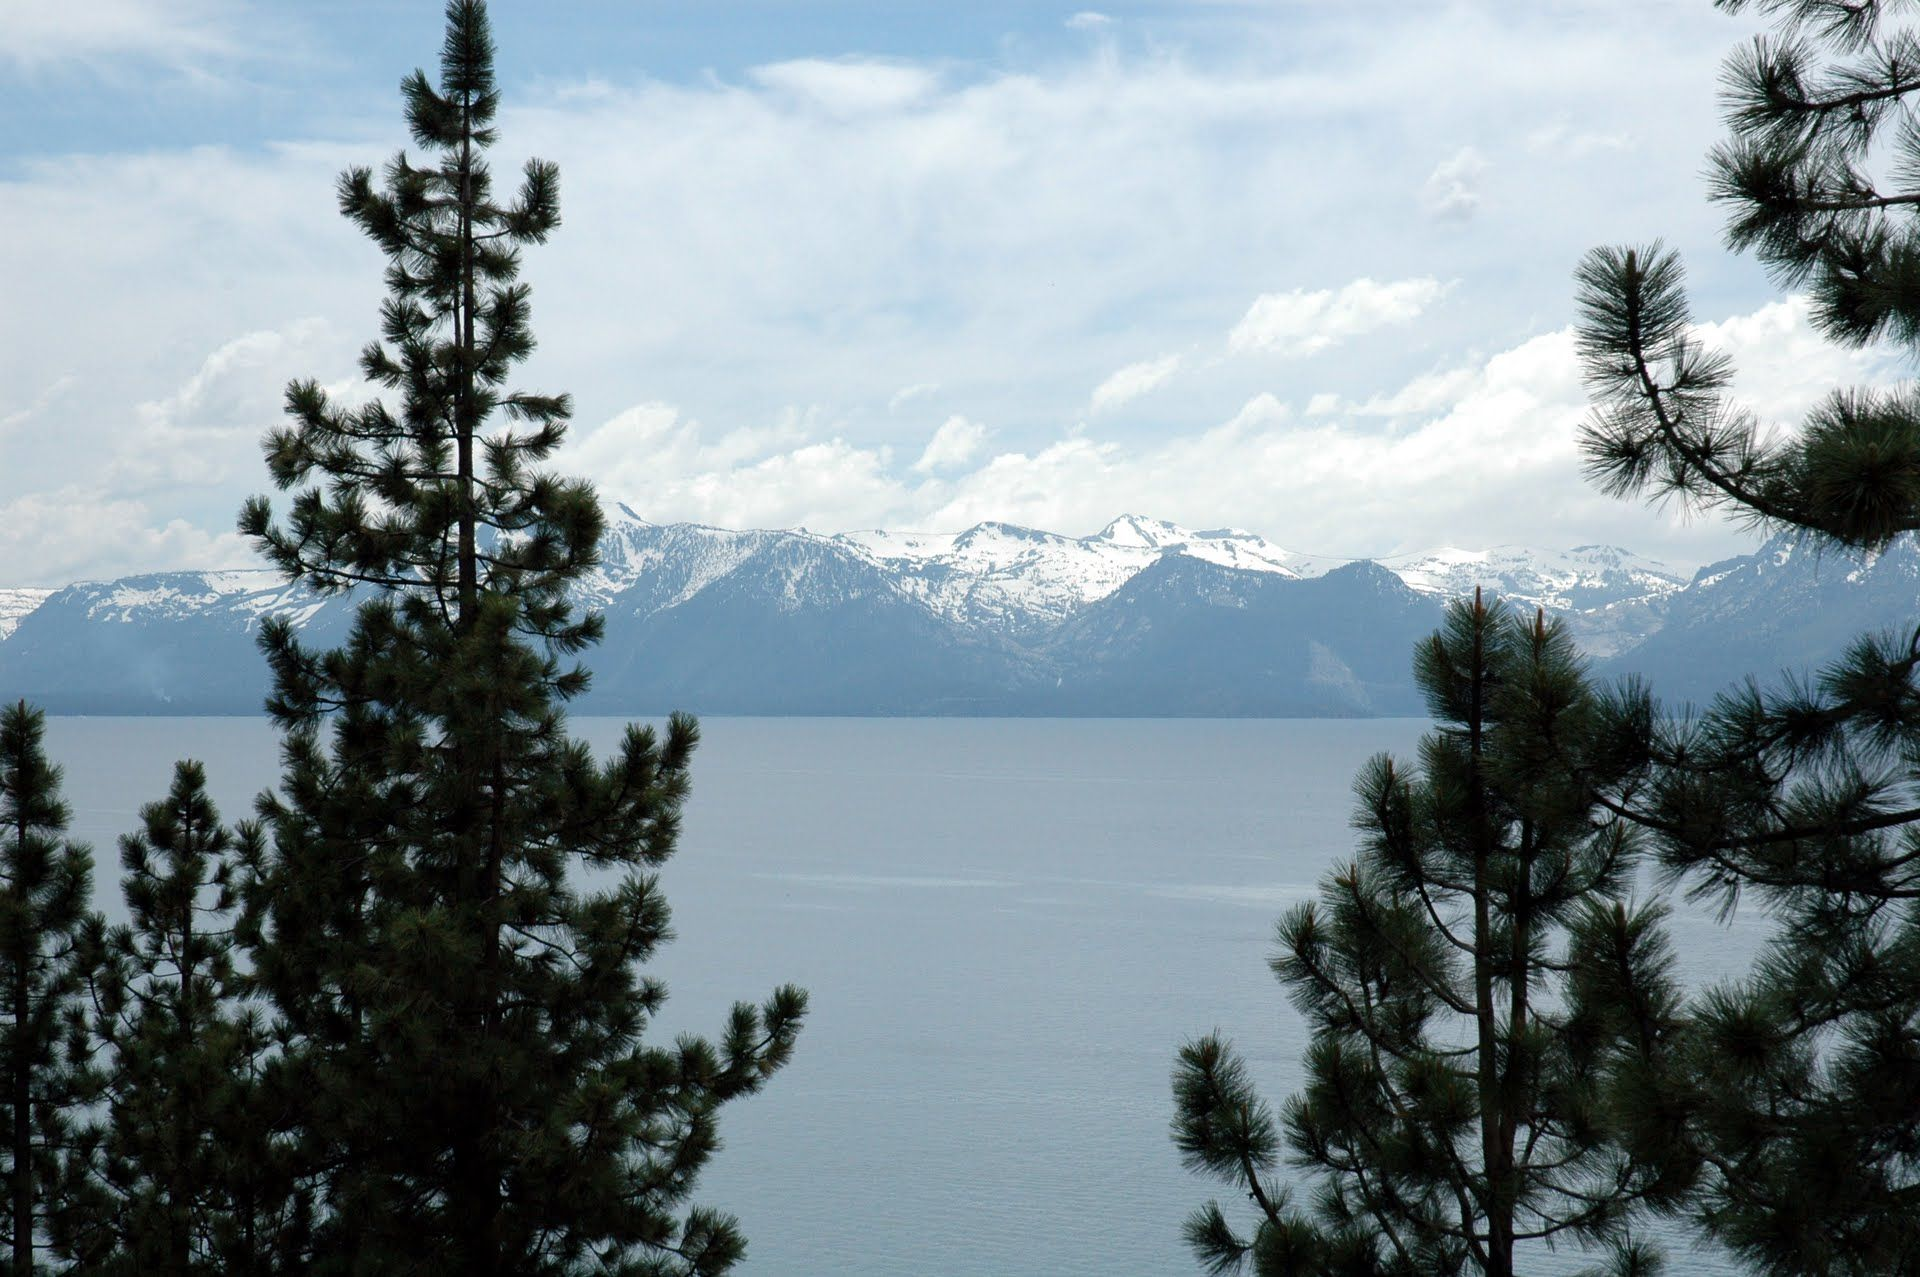 Lake tahoe sunset travel channel pinterest - Lake Tahoe Nv Vista Of Lake Tahoe With Mt Tallac In Background